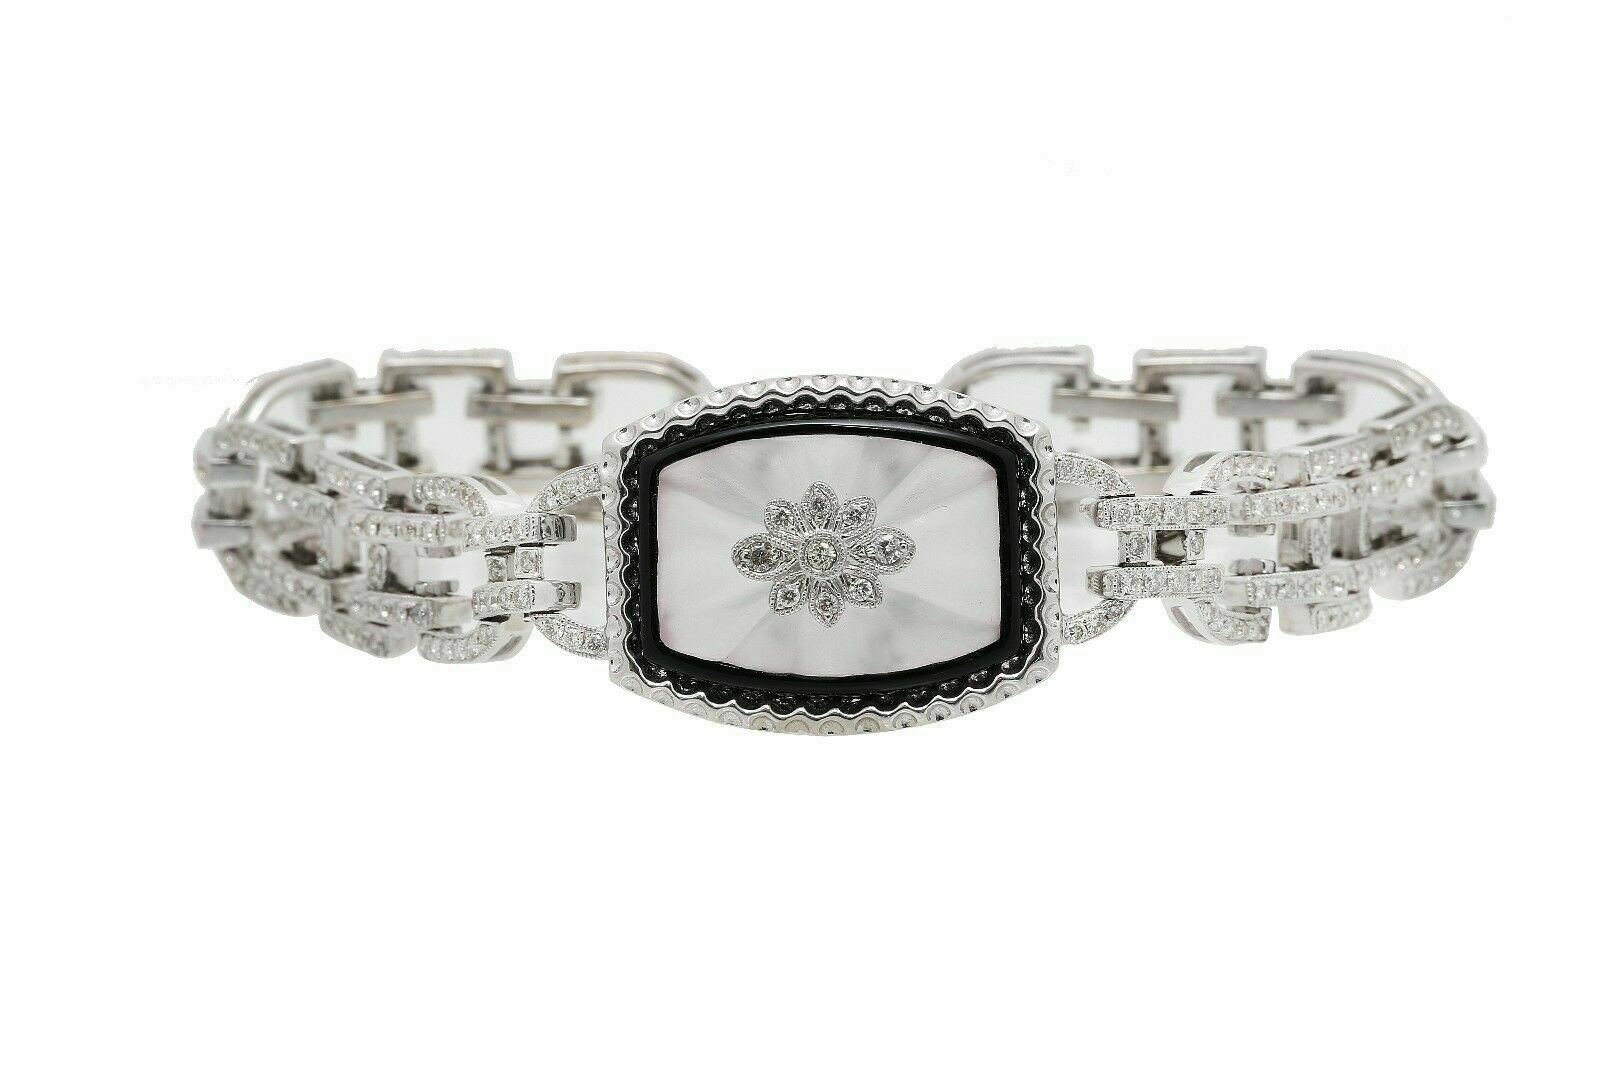 1.90 TCW Art-Deco Round Diamond Tennis Bracelet G VS2 18k White Gold 7.5 In Long